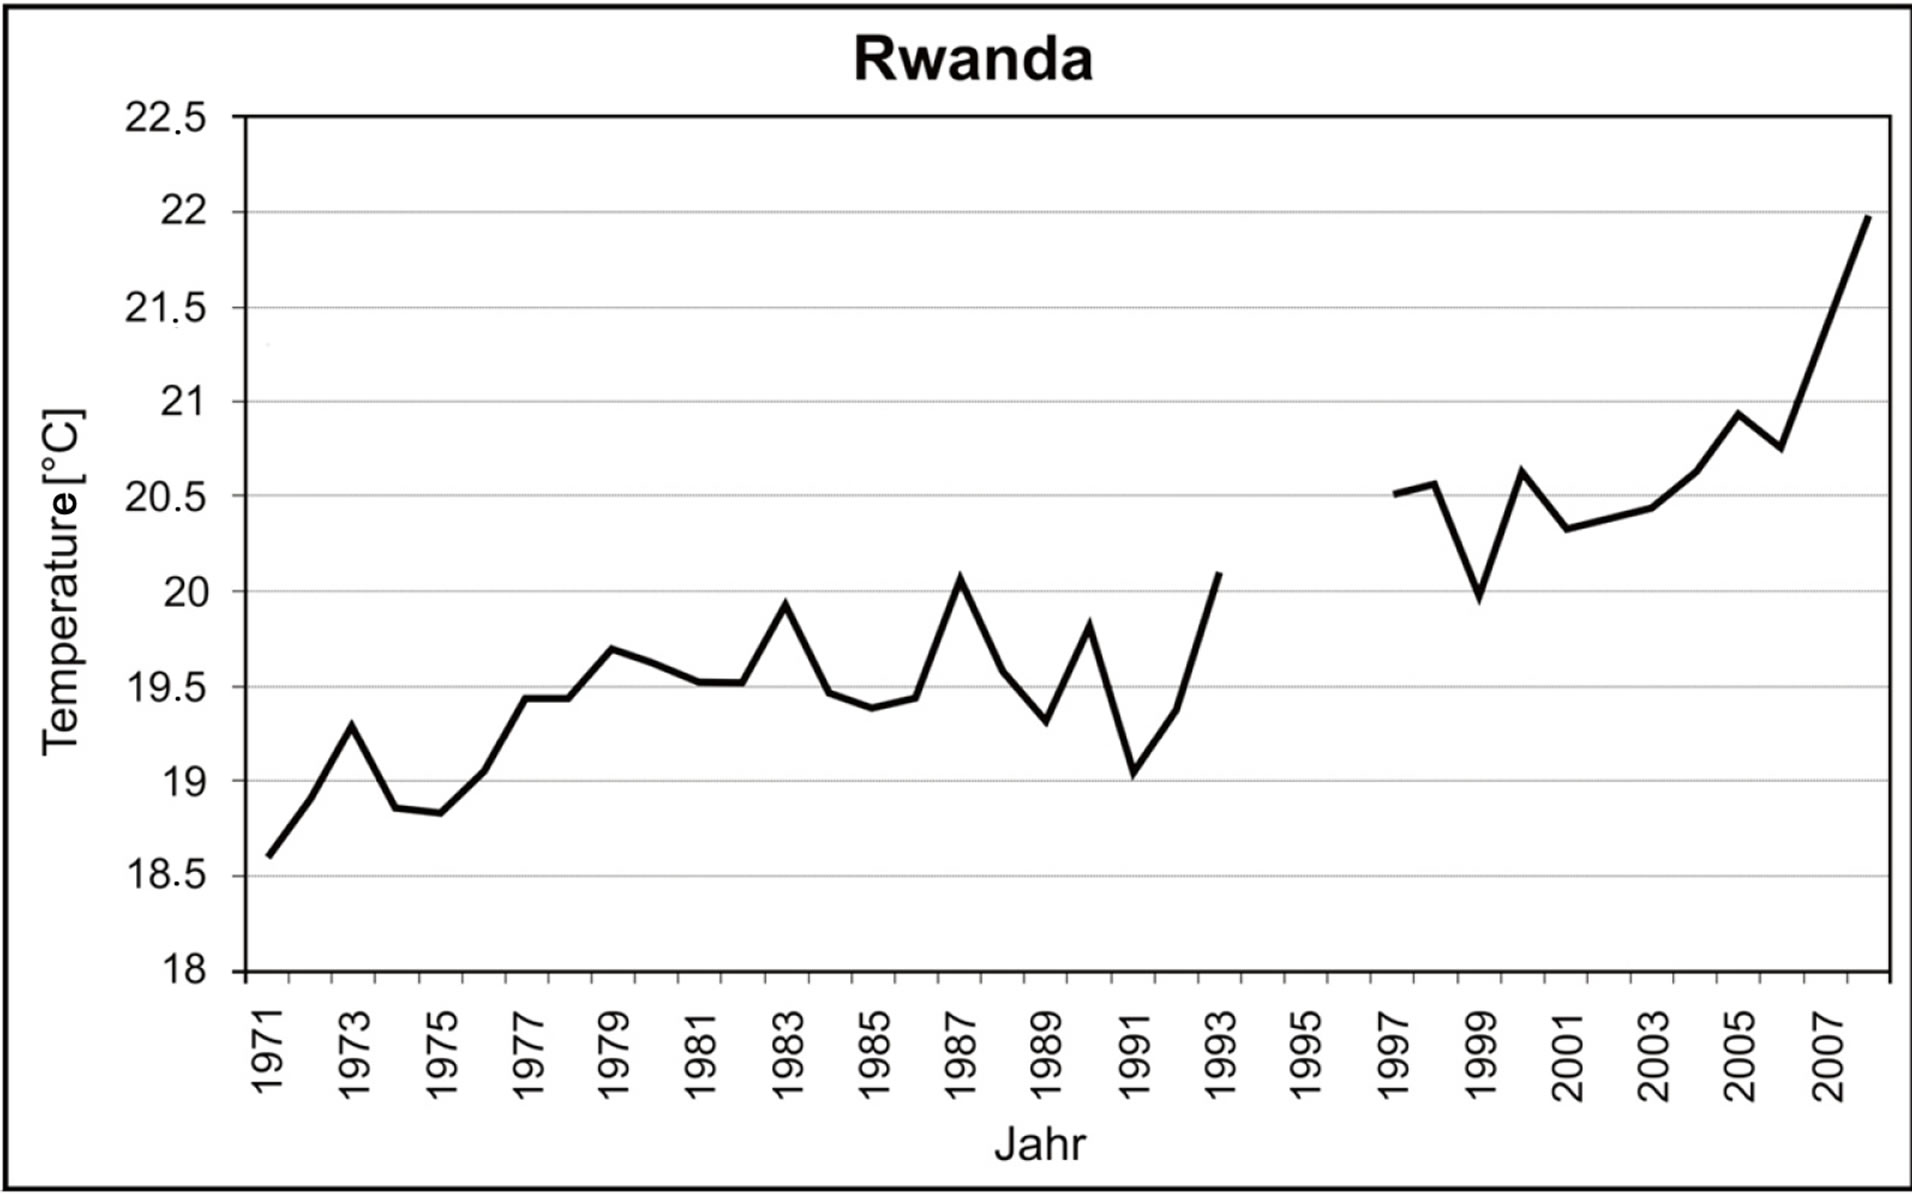 rwanda genocide term paper The genesis of rwandan massacre can be traced back to the colonial rule which was marked by unequal treatment between the two main communities.